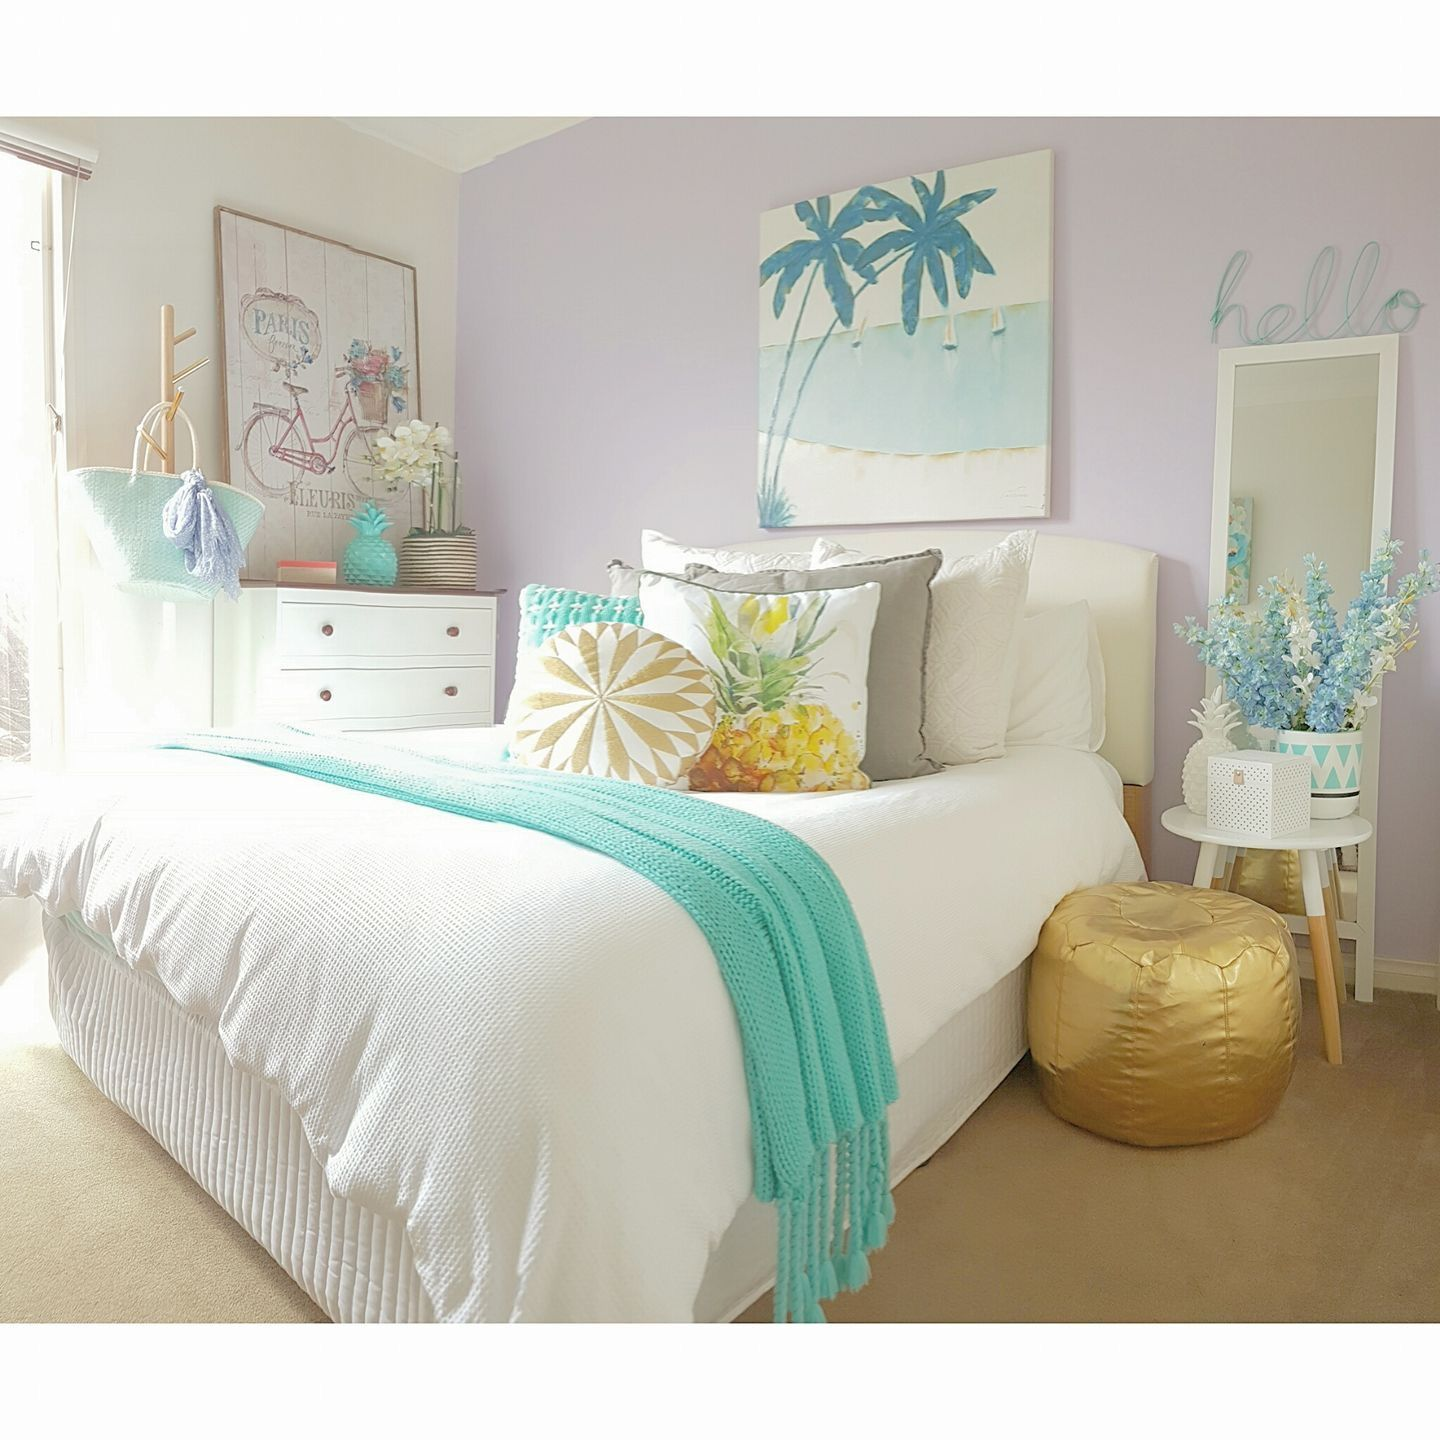 Kmart Bedroom Styling Quilt Cover